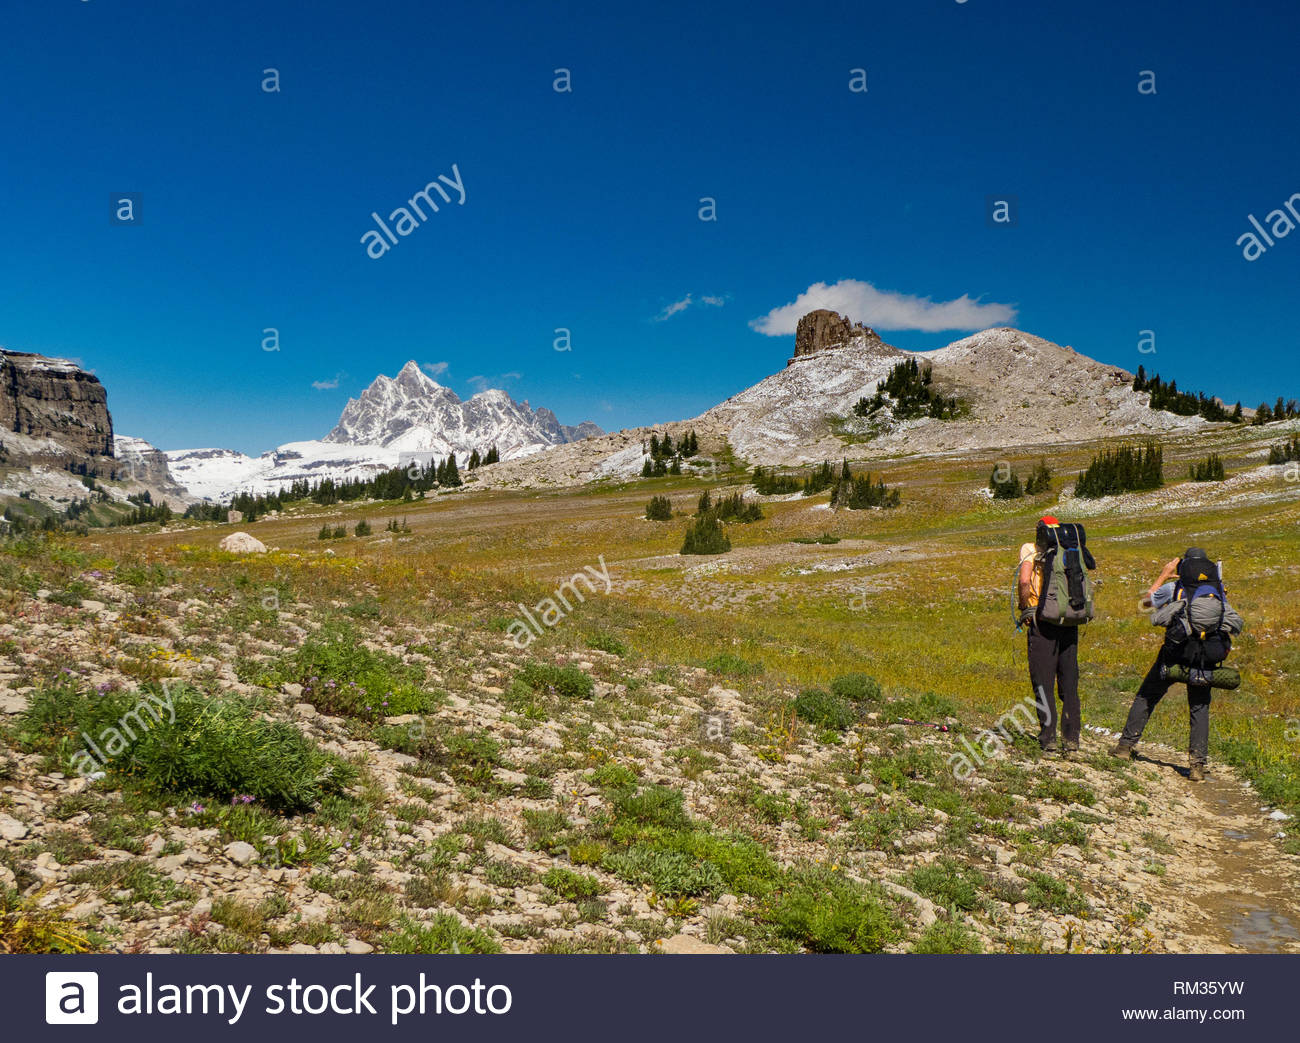 Two backpackers pausing to admire the view of the snow covered Grand Teton peak from the Teton Crest Trail, Jedediah Smith Wilderness, Teton County, W - Stock Image